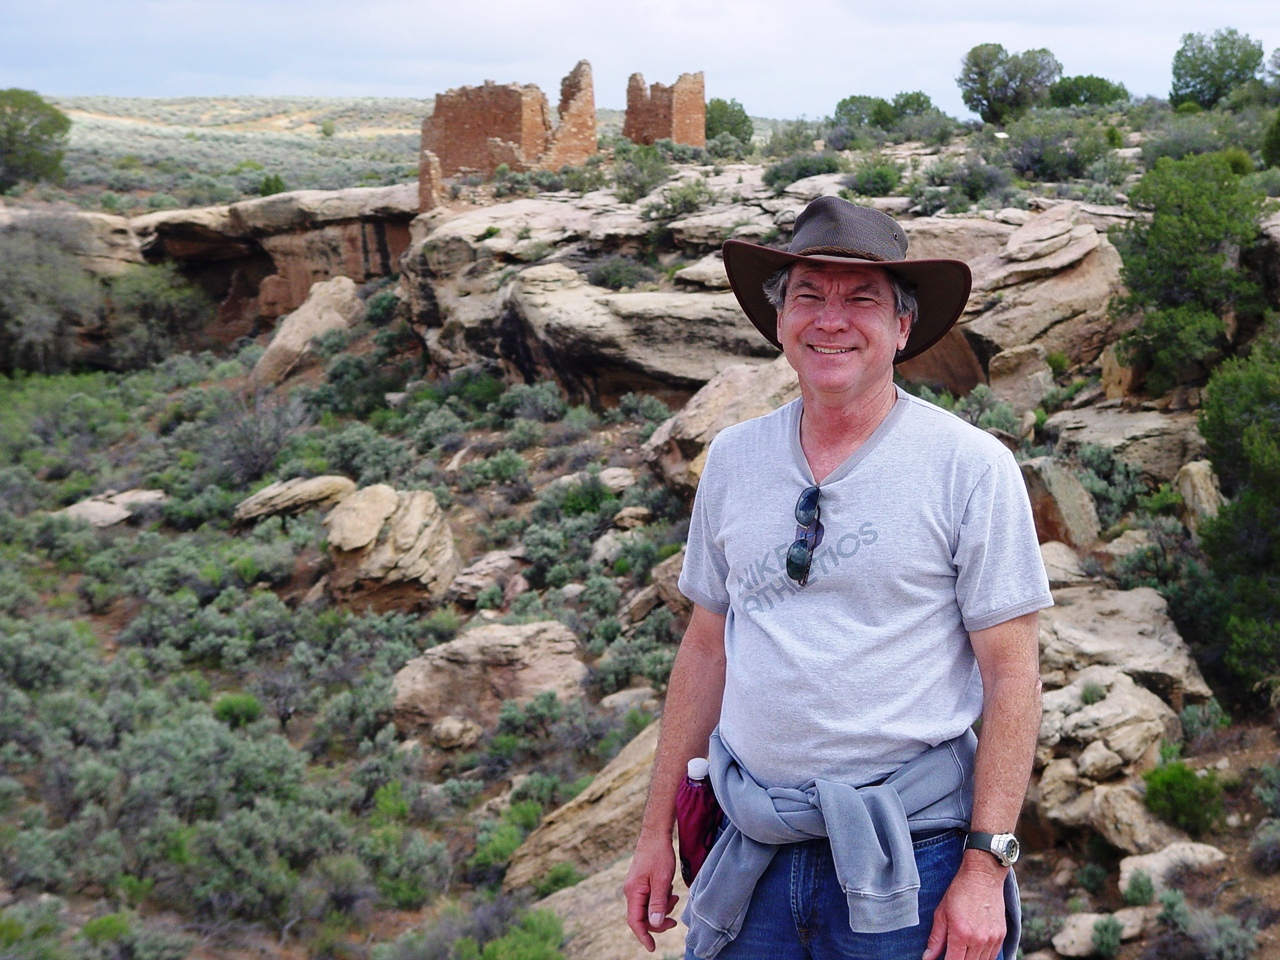 The author, James McGillis, with Hovenweep Castle in background - Click for larger image (http://jamesmcgillis.com)